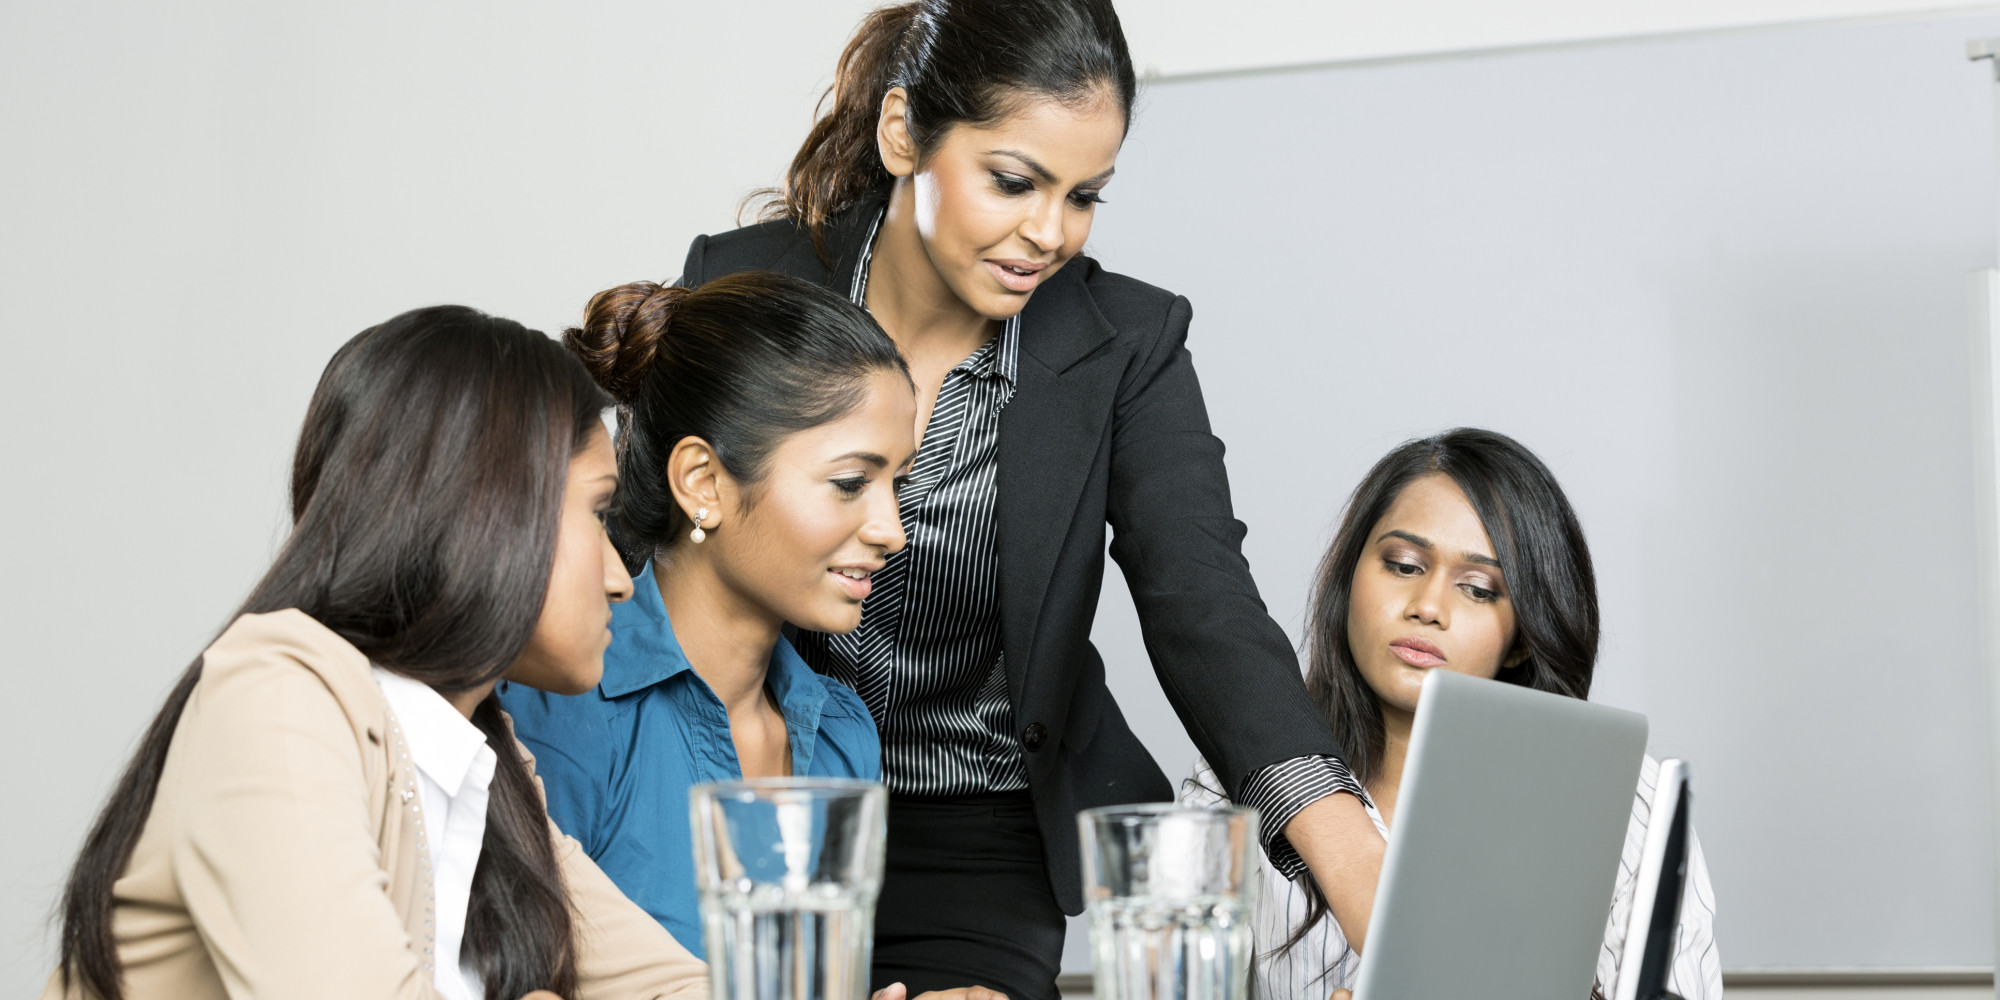 status of woman in modern india Women empowerment : a challenge of 21 st century concept paper historical background of women empowerment in india the status of women in india has been subject to many great changes over the past few millenium in early.